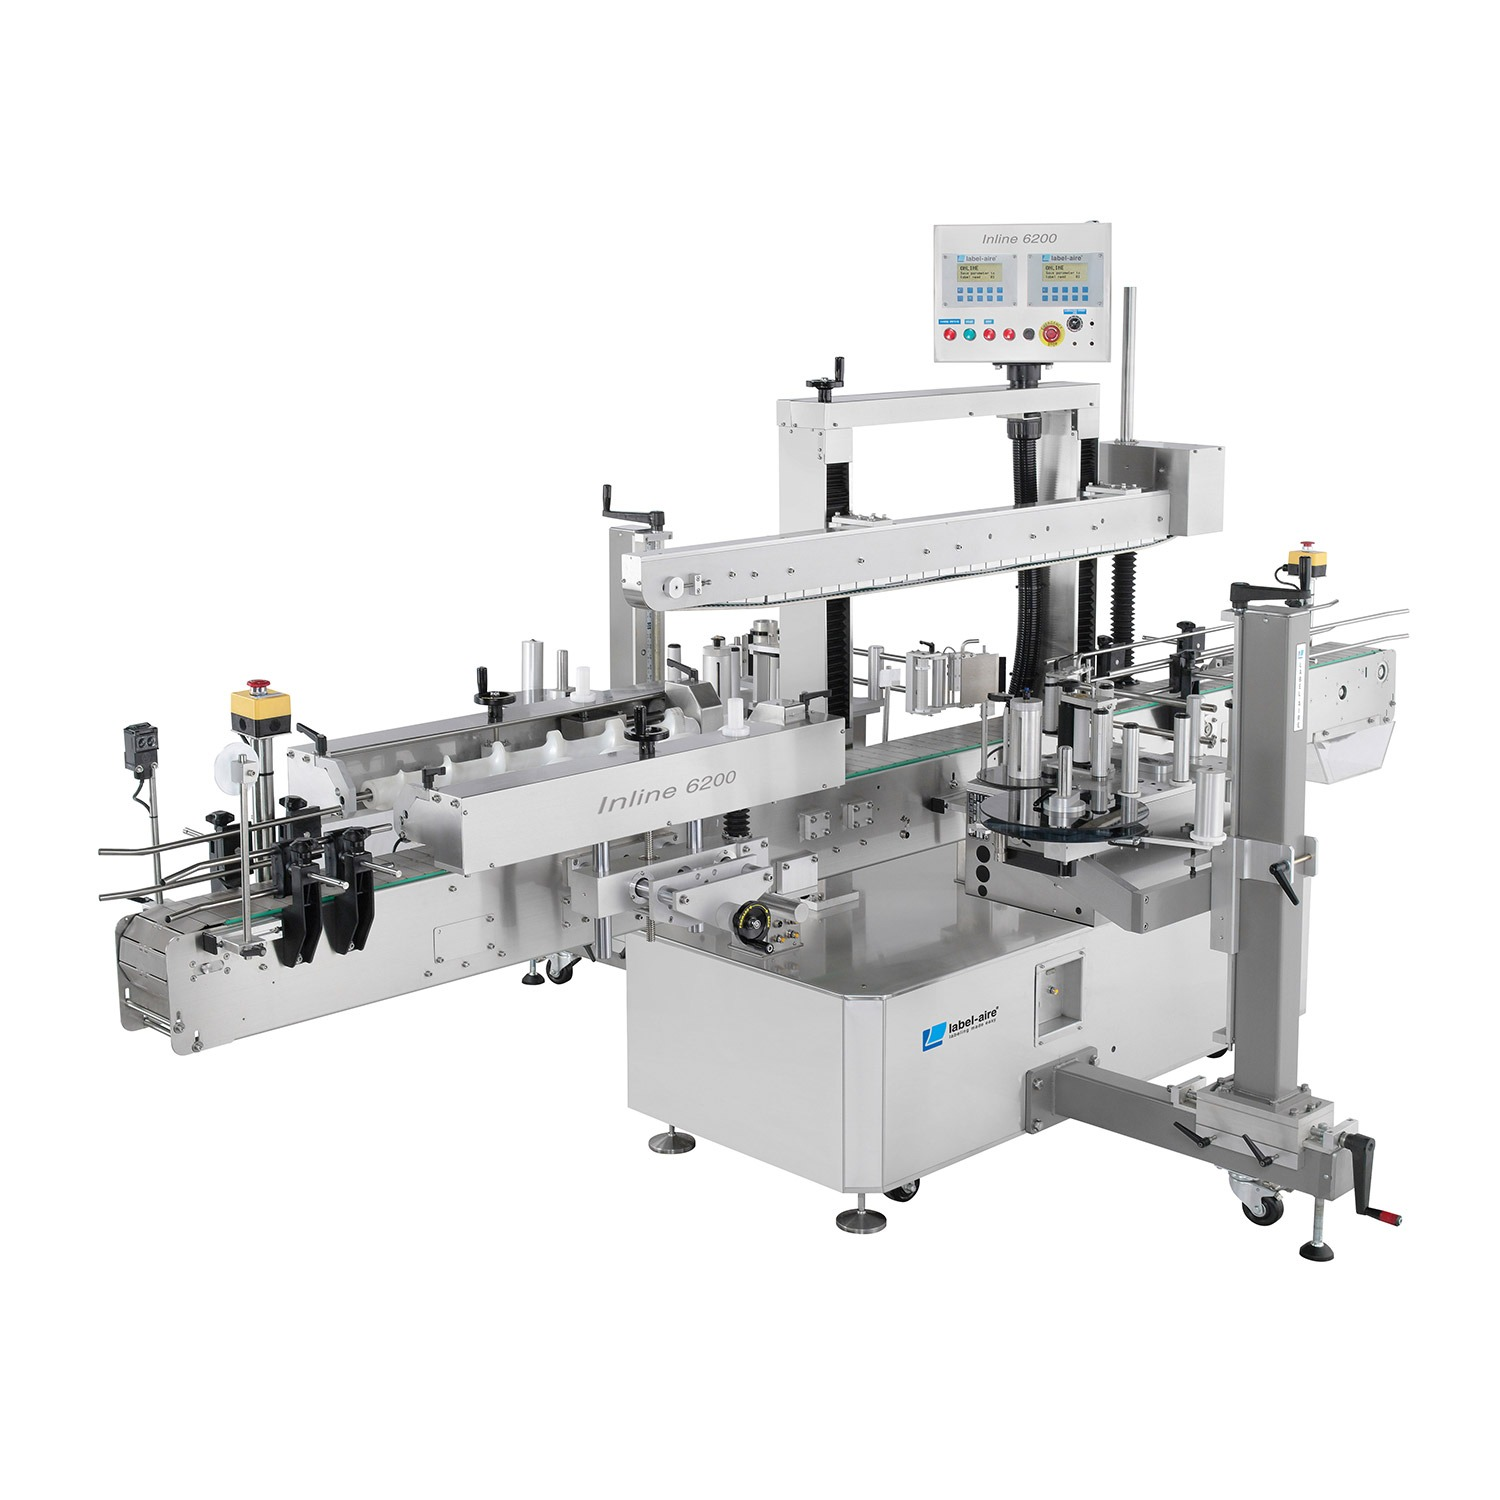 Label-Aire Inline 6200 Labeling System